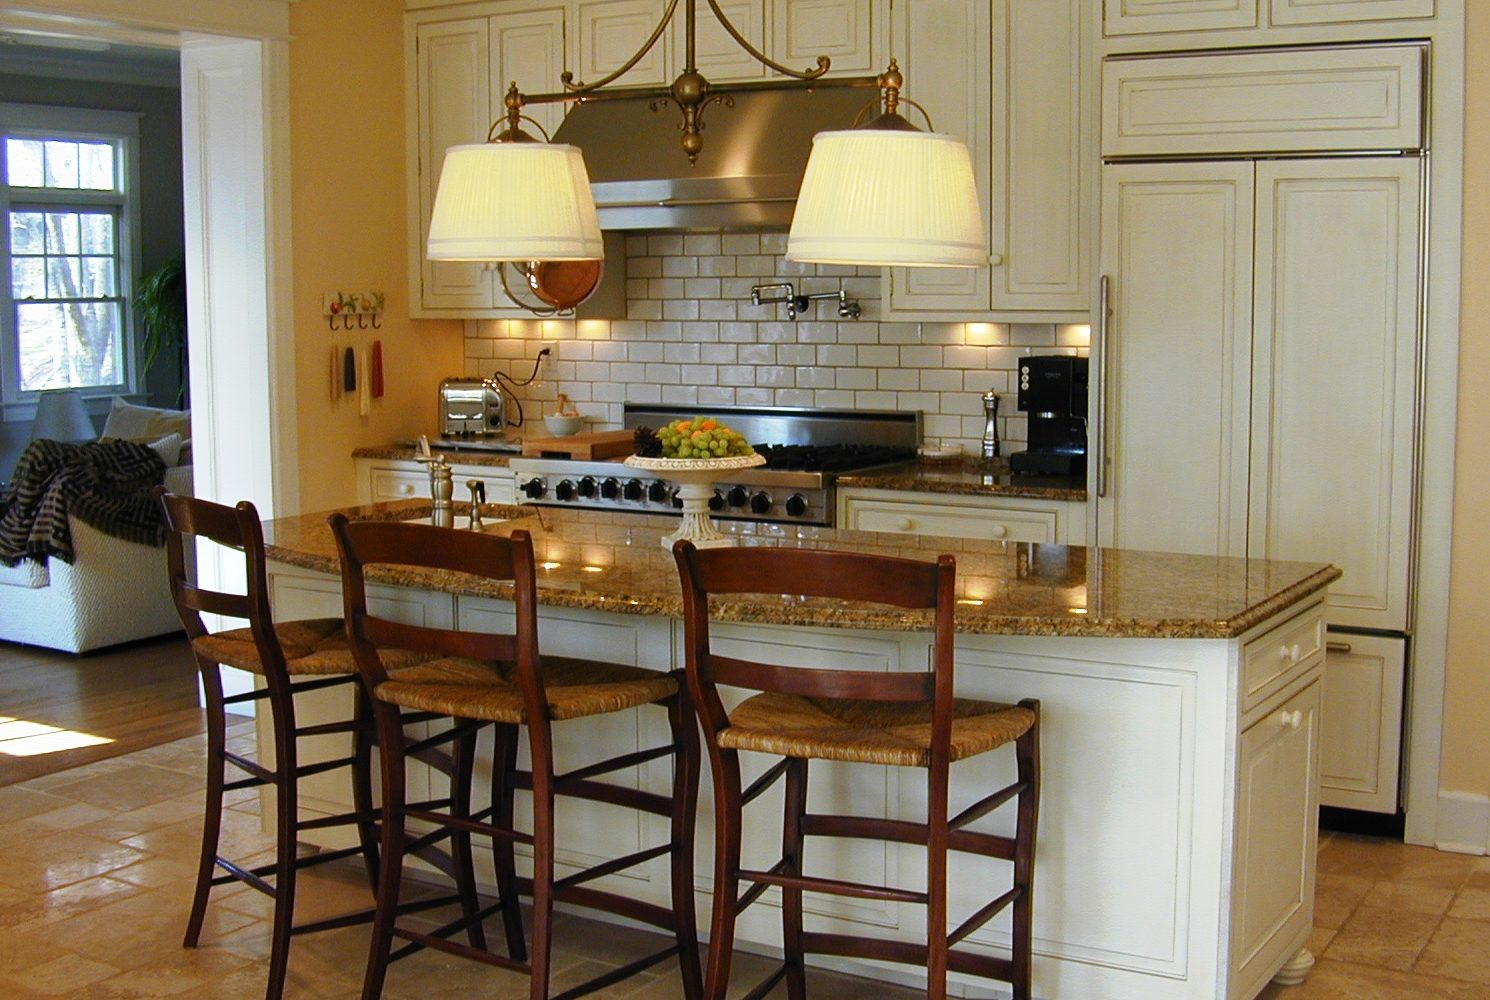 How to understand the cost for your next kitchen remodel the design build way in Maryland & Washington, DC